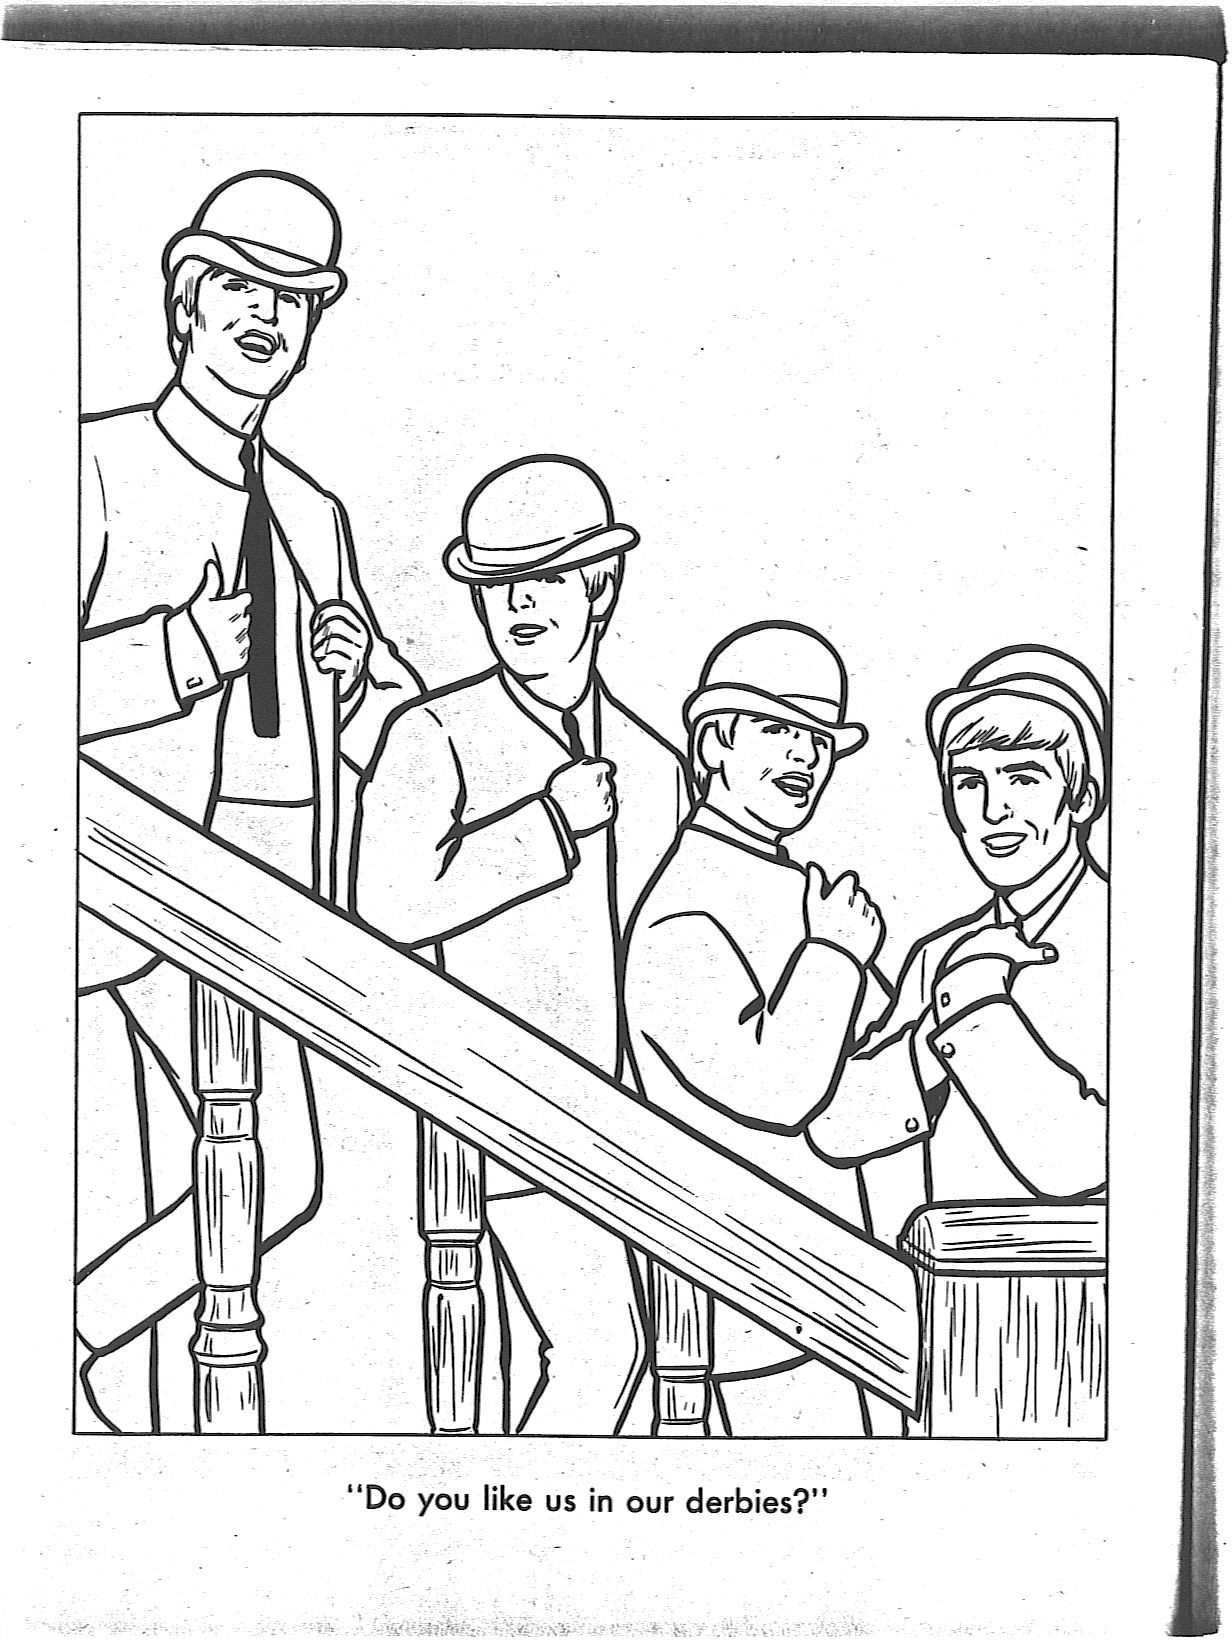 from the beatles coloring book - Beatles Coloring Book